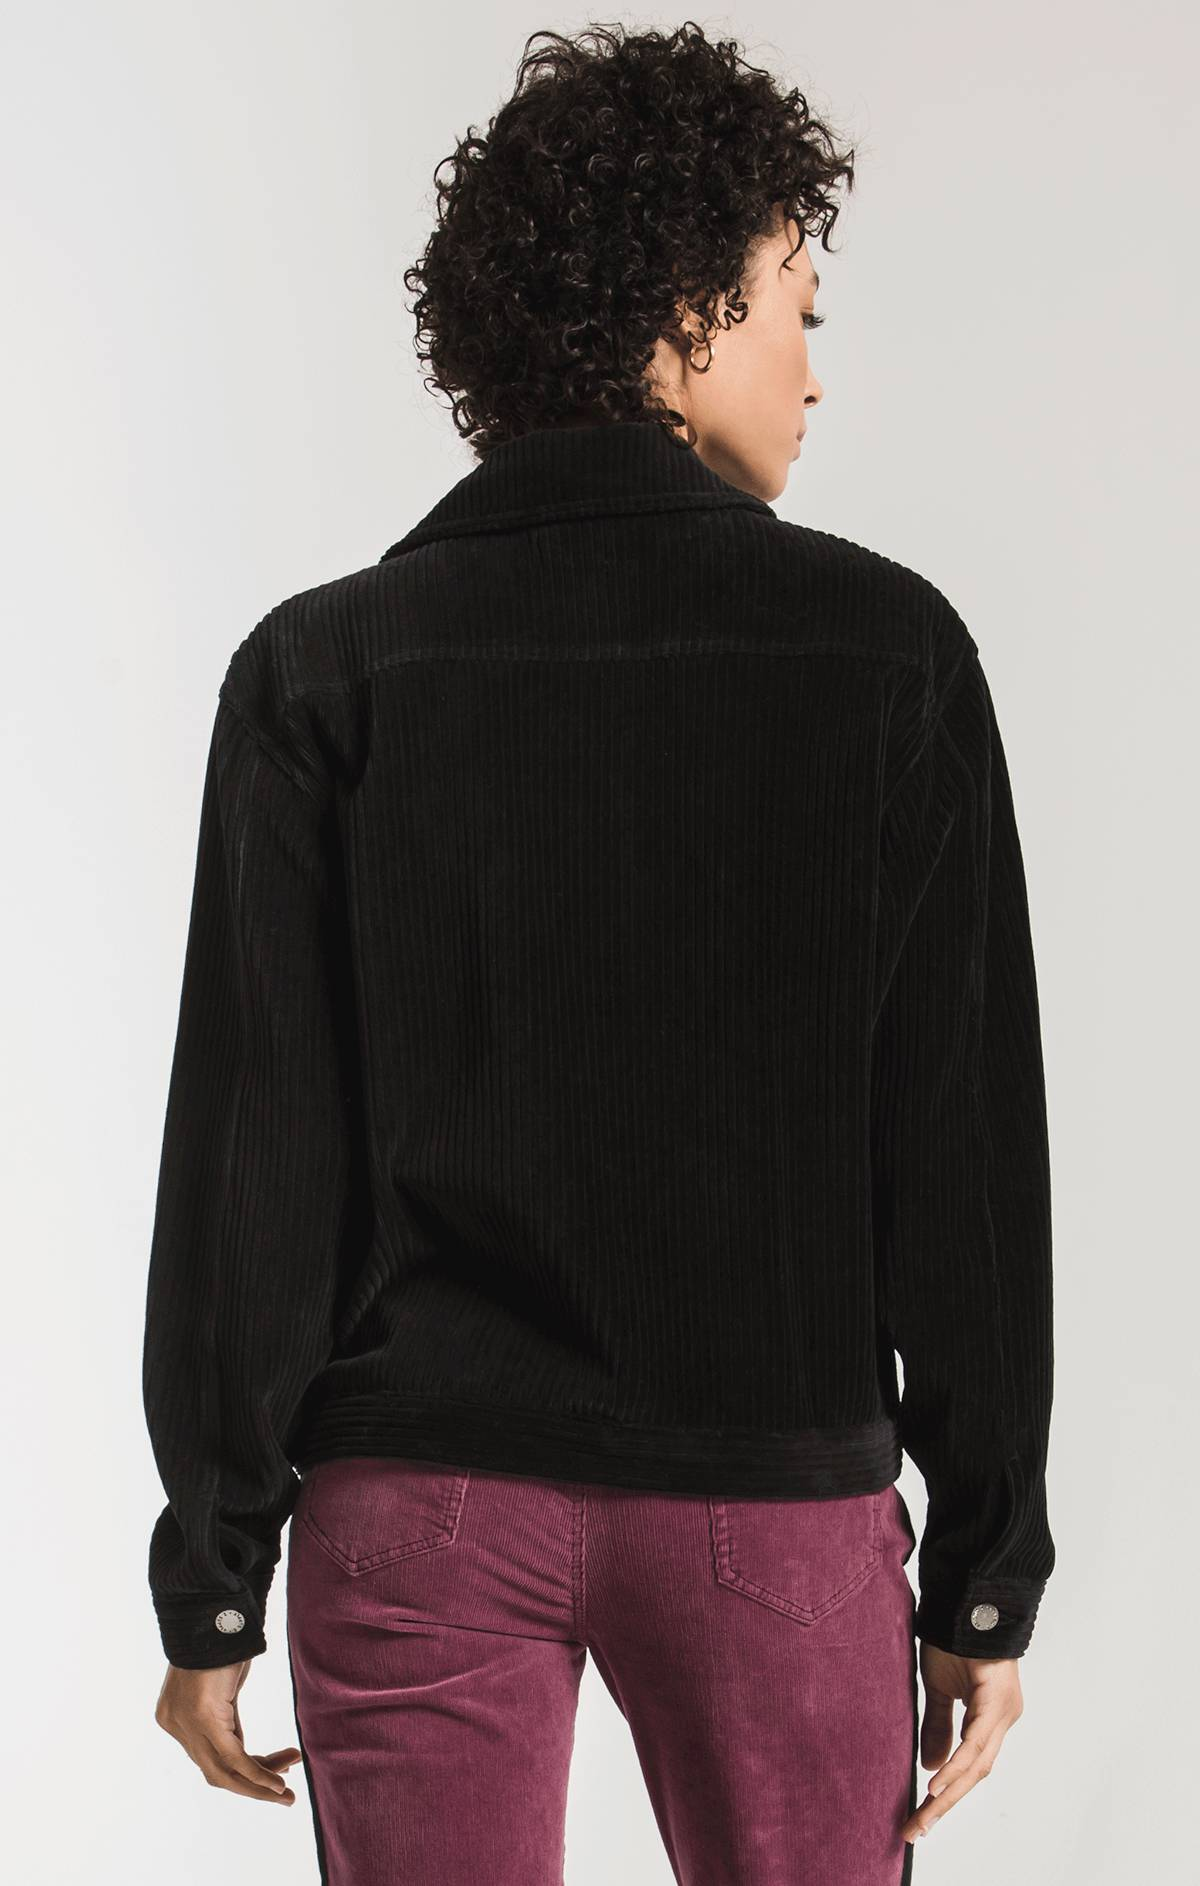 Jackets The Knit Corduroy Jacket Black